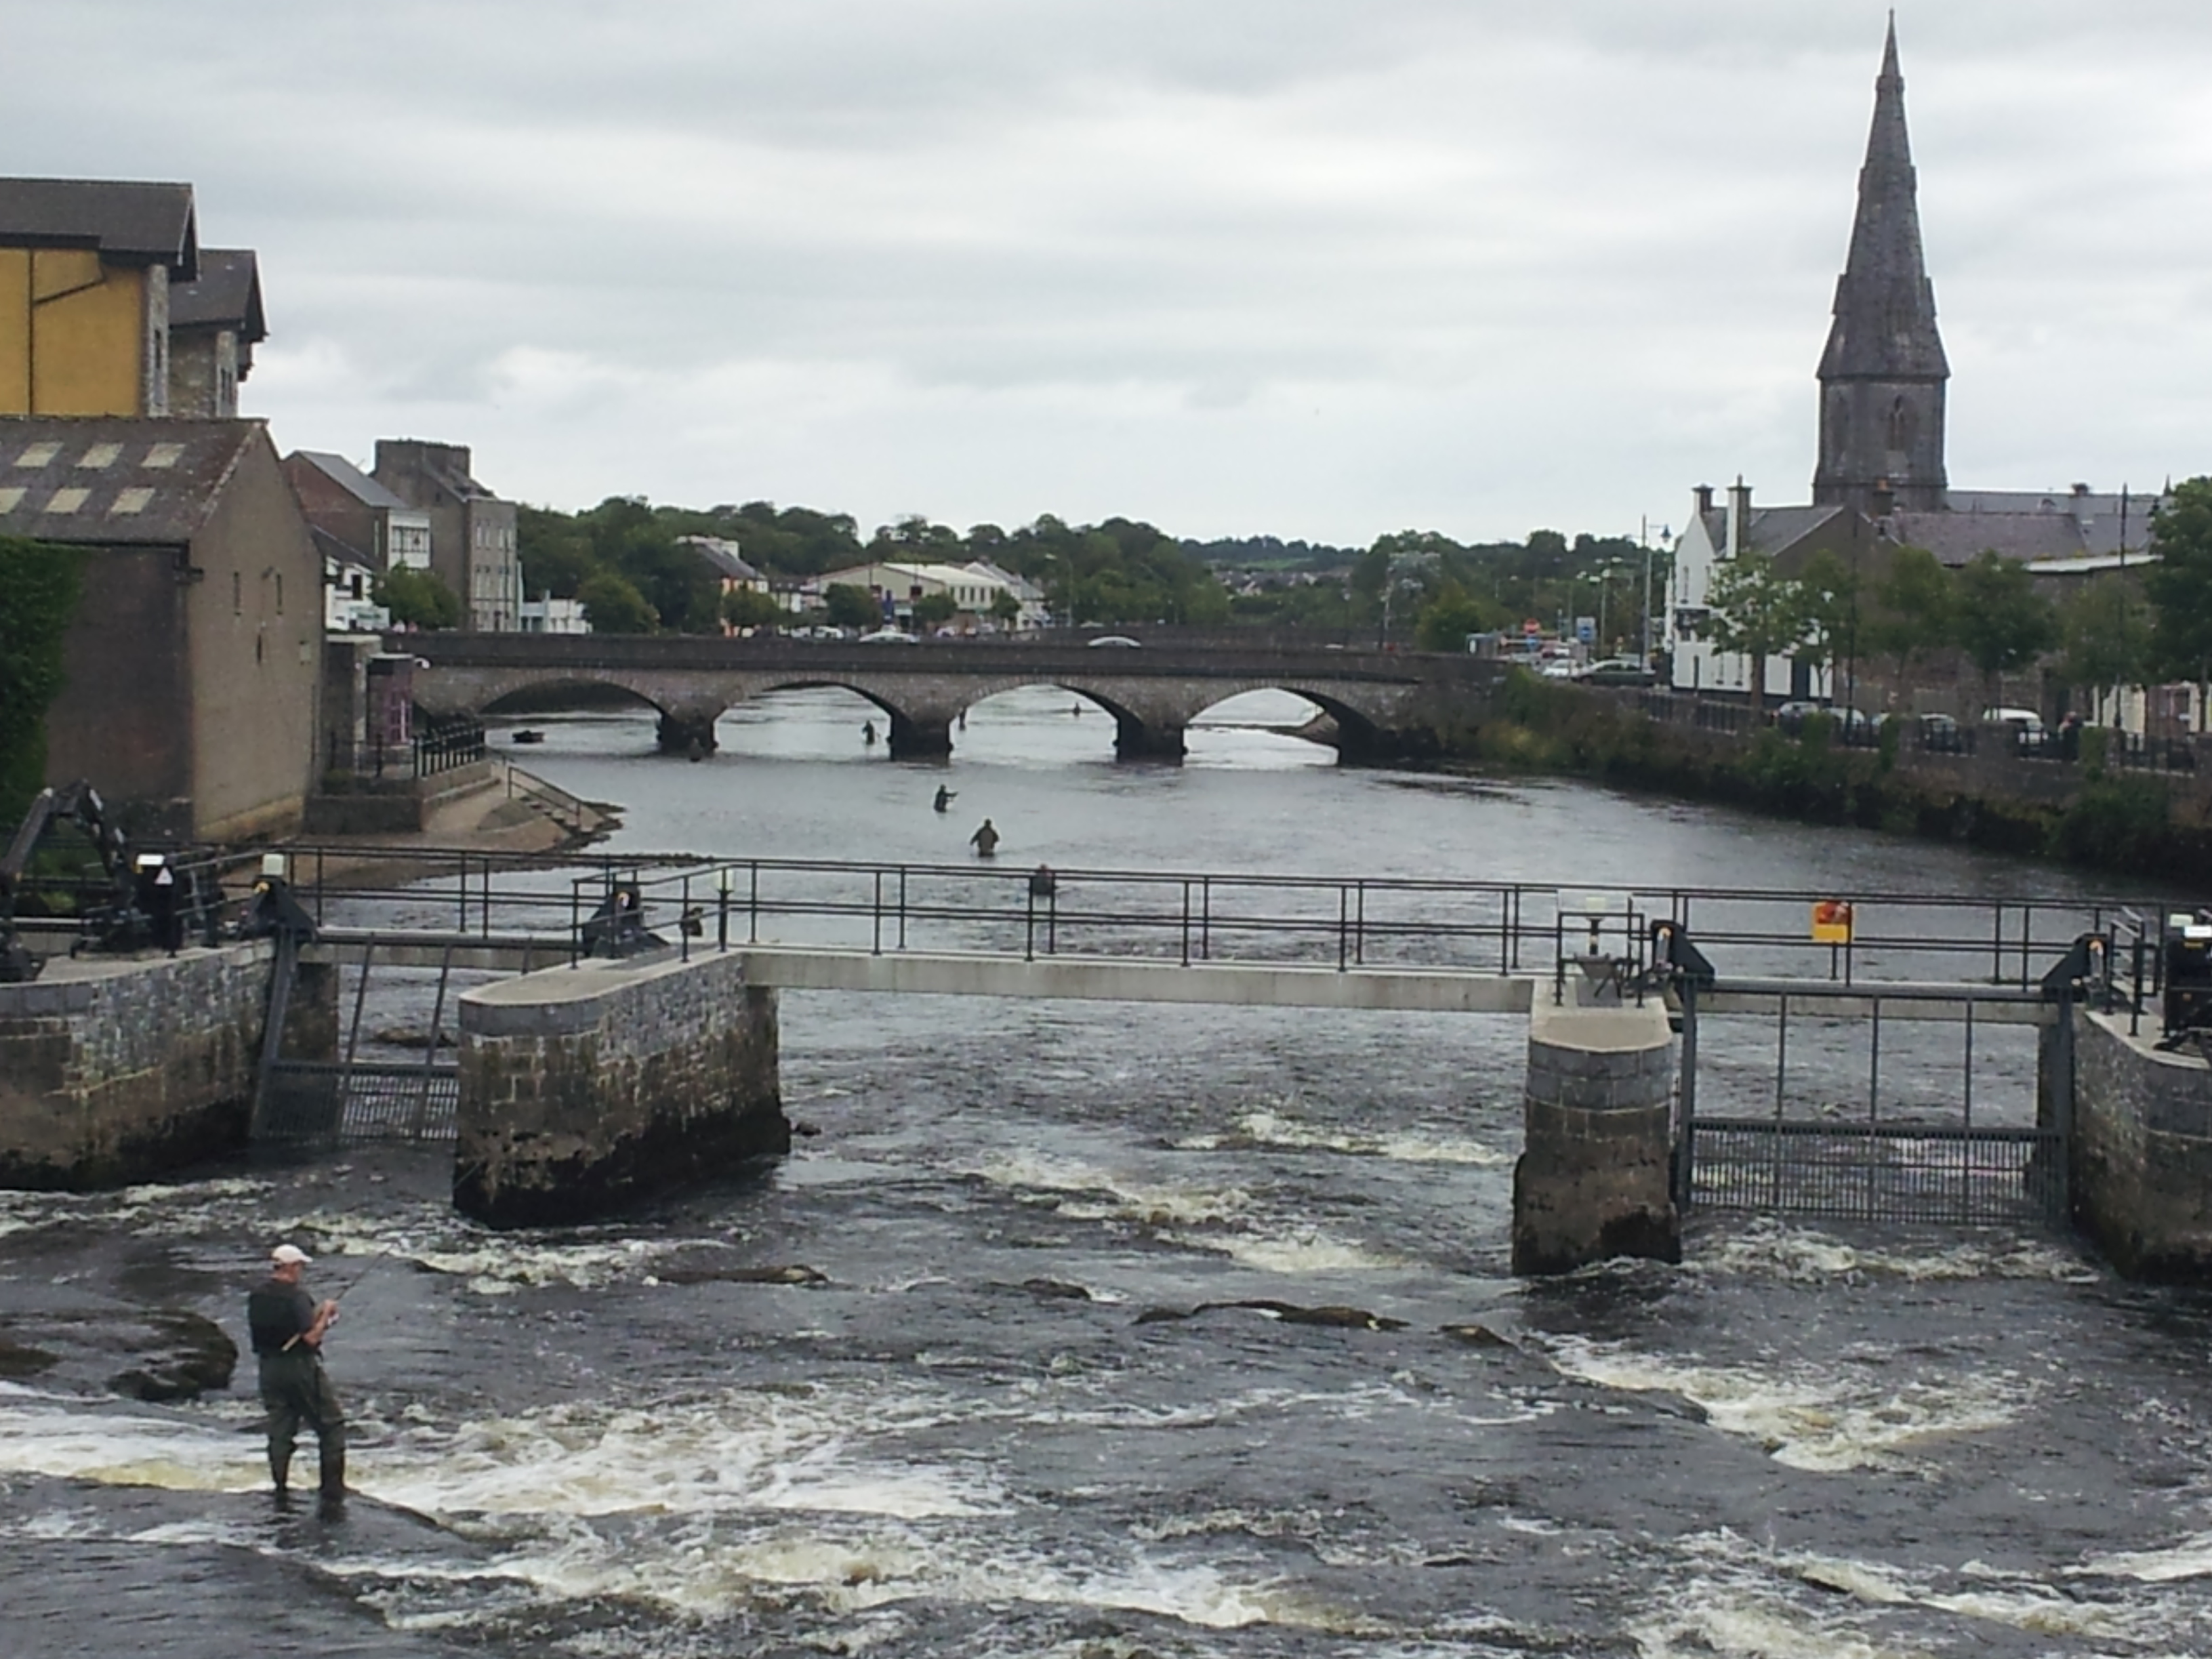 Ballina Ireland  City pictures : Description Fly fishing, River Moy, Ballina, Mayo, Ireland